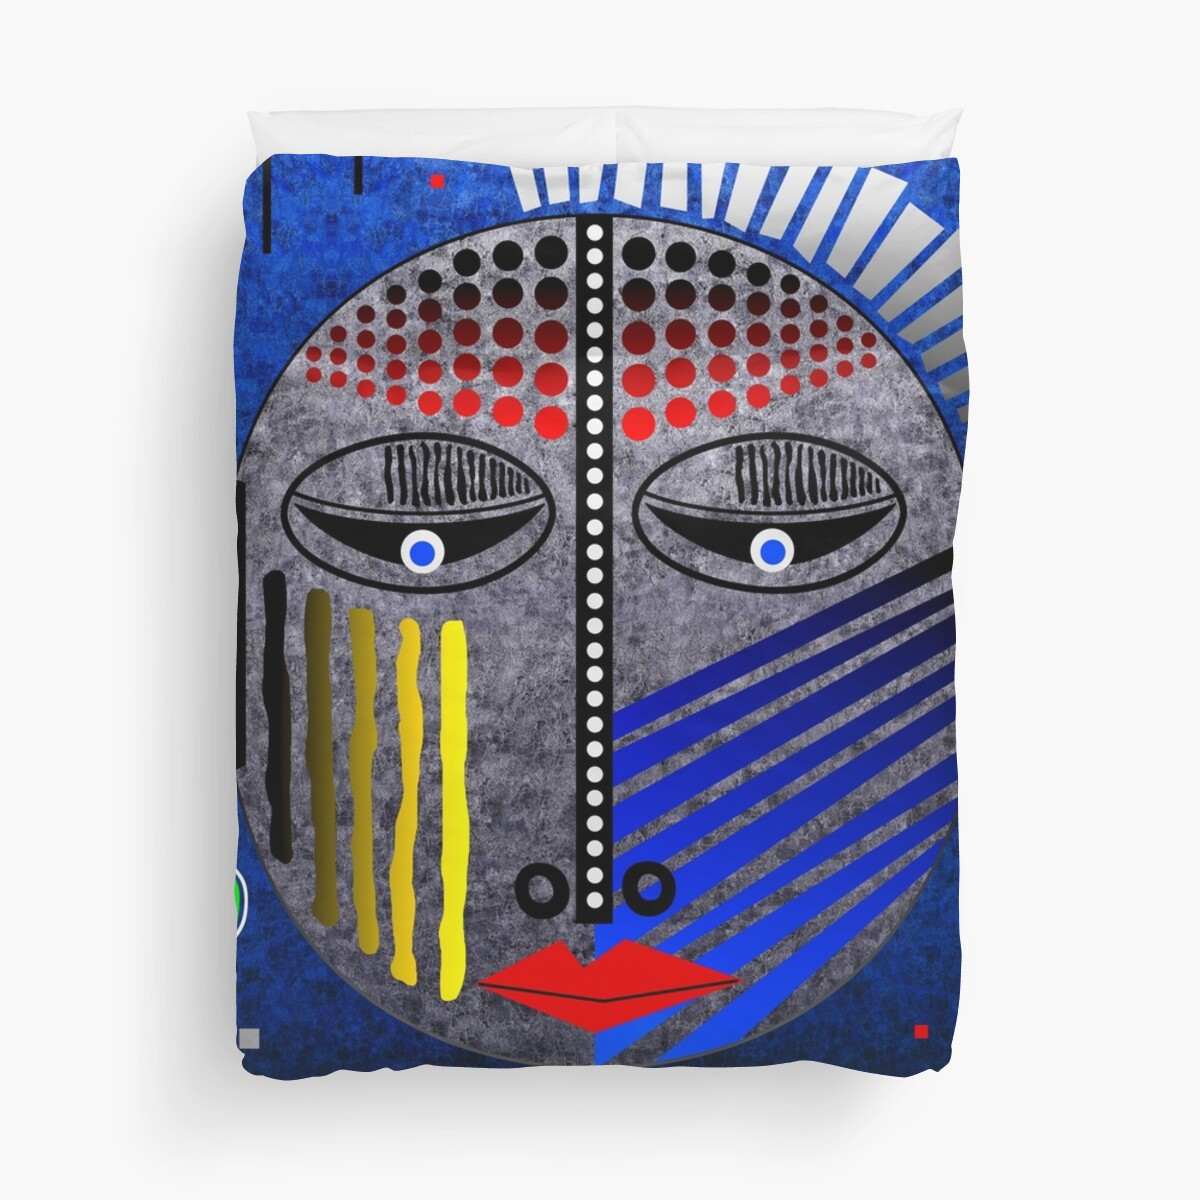 'Tribal Whimsy 12' Duvet Cover products by renowned vagabond fine art travel photographer, Glen Allison